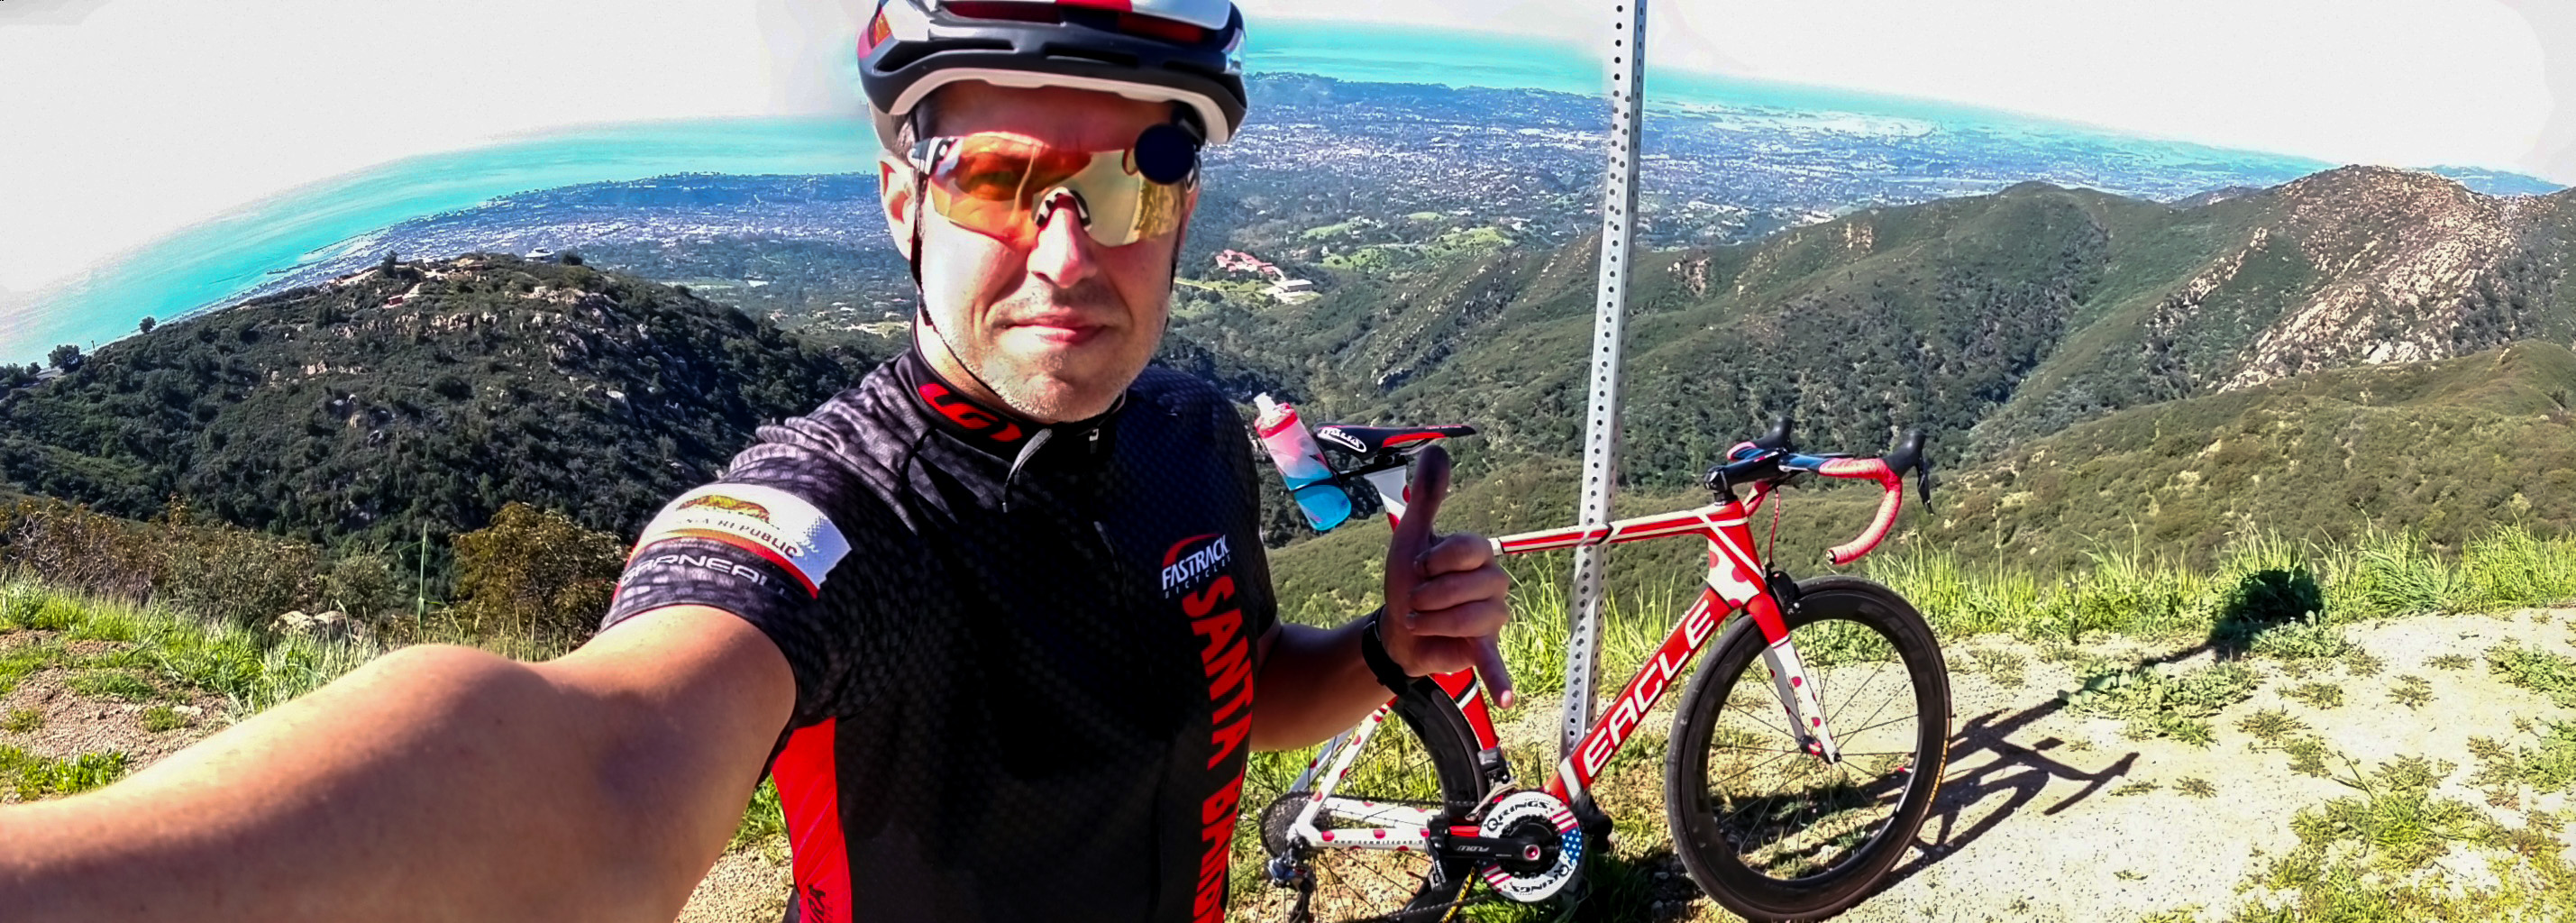 Summit4CAD Founder Jon Patrick Hyde on his Eagle Bicycles Z3 while climbing Gibraltar Rd in California